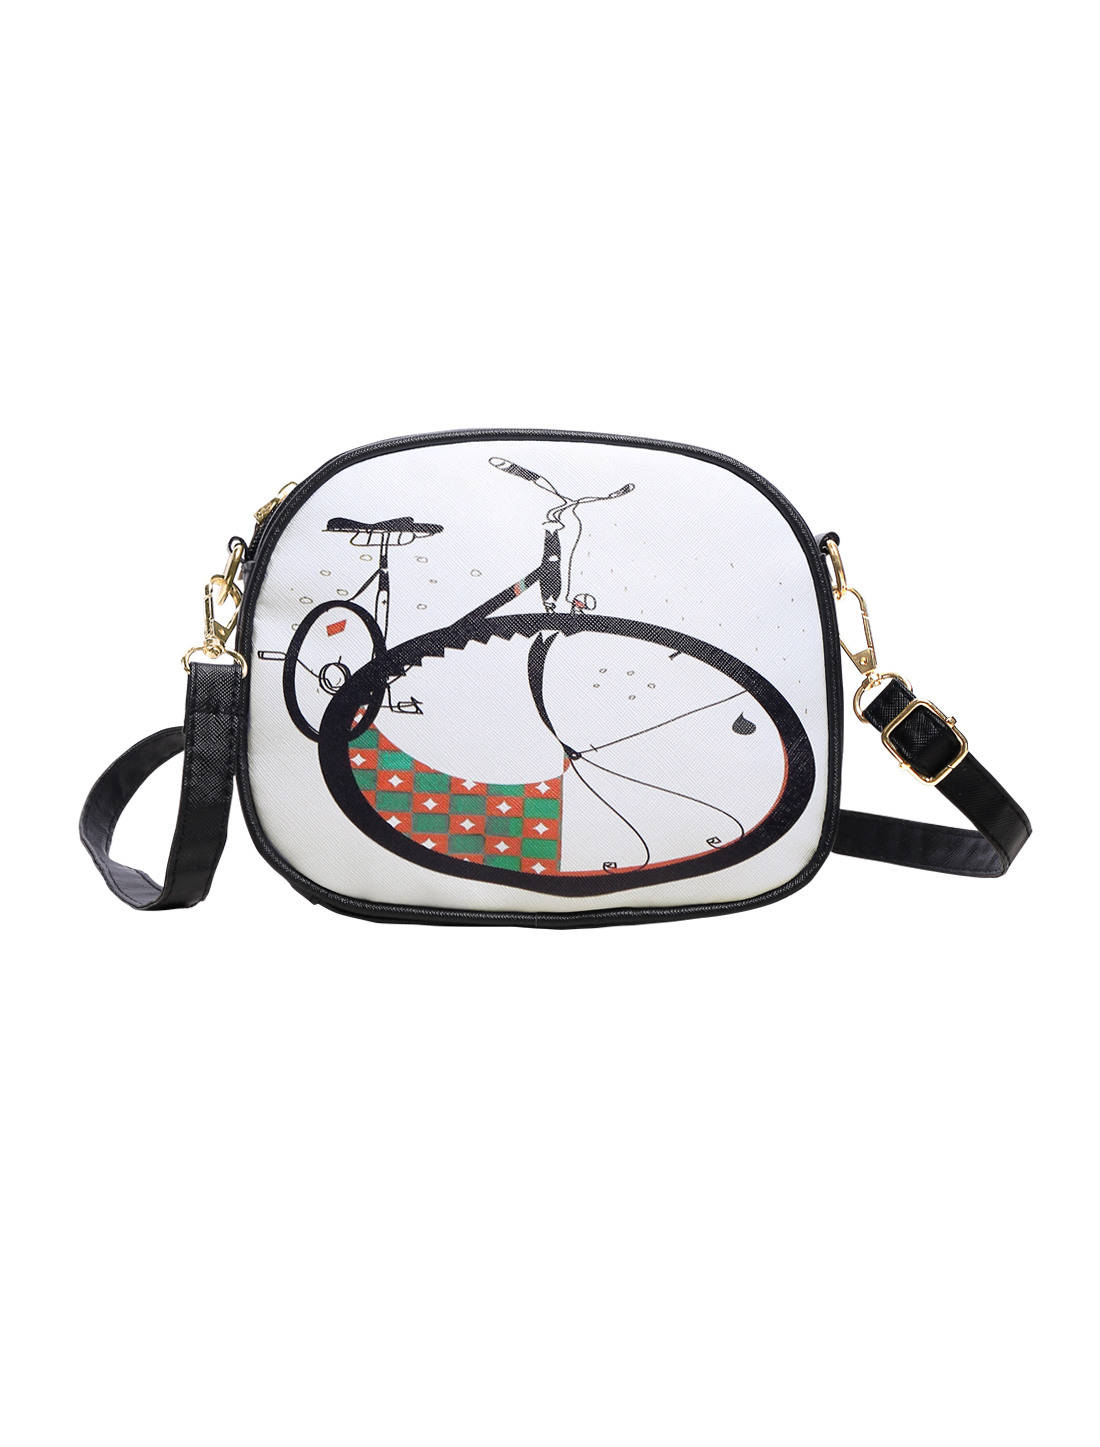 Women Faux Leather Crossbody Shoulder Bag Satchel Tote Purse Hobo Messenger Bicycle